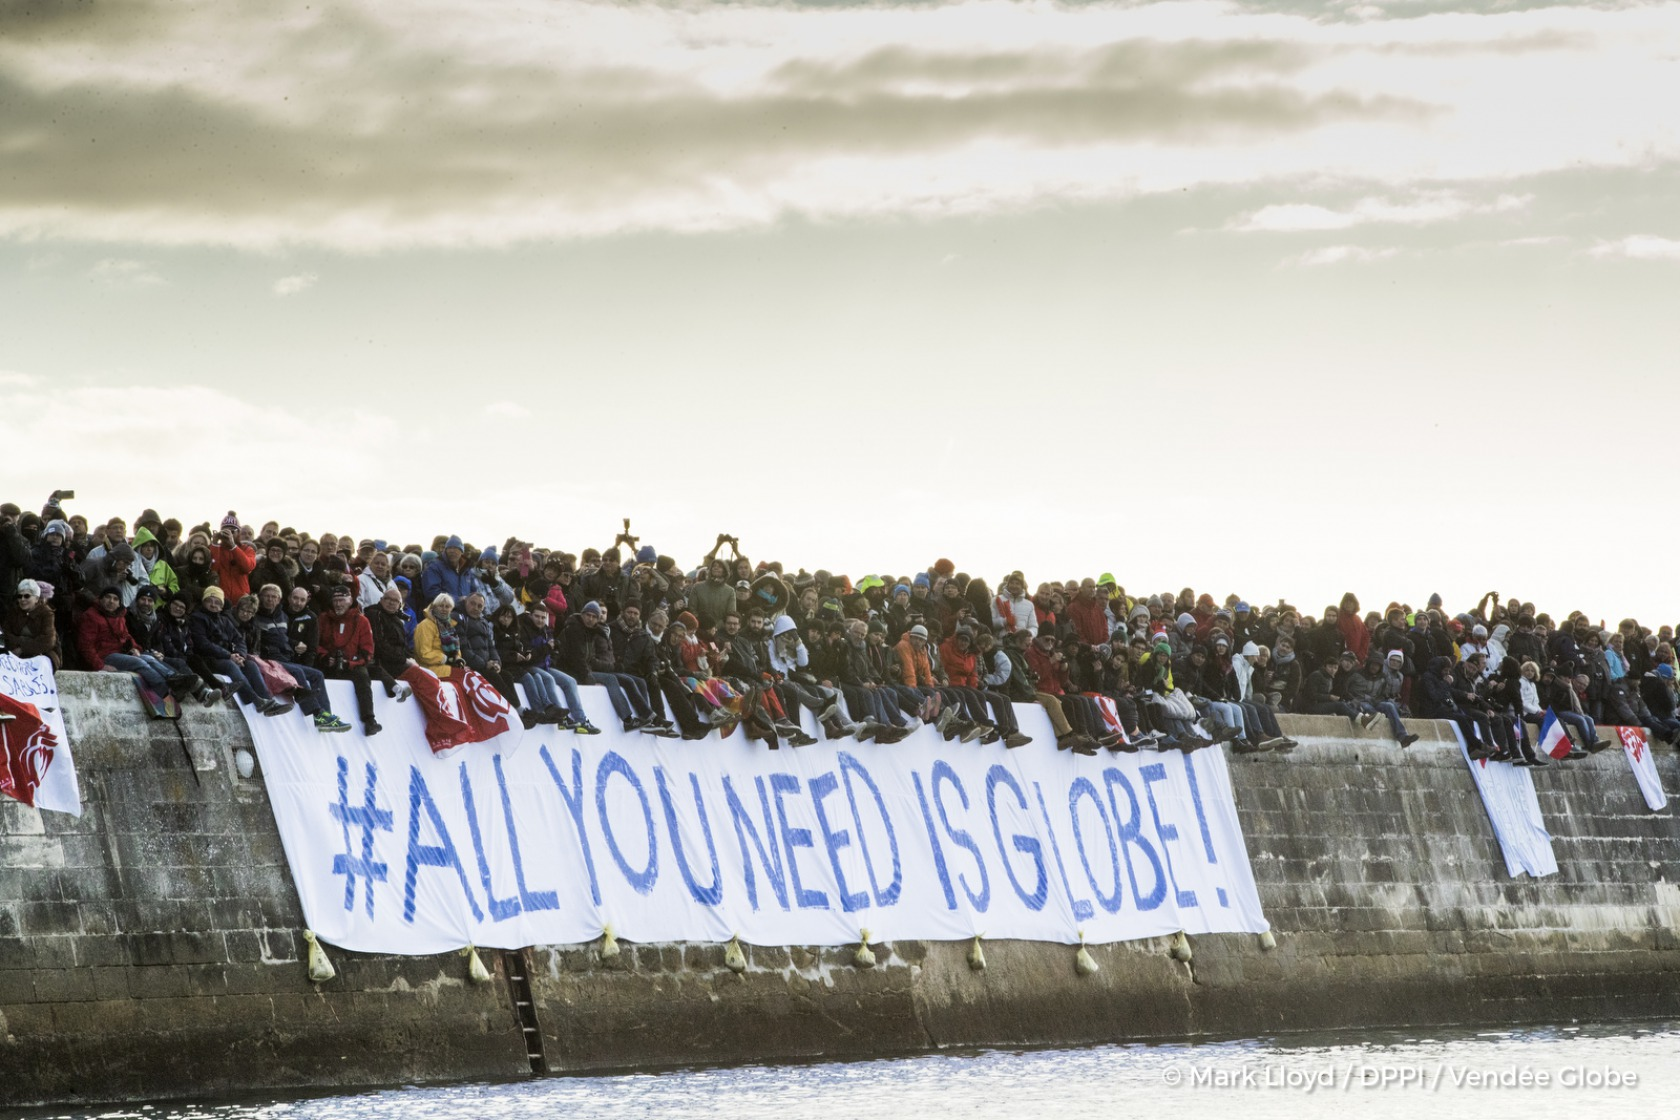 Channel ambiance Start of the Vendee Globe, in Les Sables d'Olonne, France, on November 6th, 2016 - Photo Mark Lloyd / DPPI / Vendee GlobeAmbiance public dans le chenal au départ du Vendée Globe, aux Sables d'Olonne le 6 Novembre 2016 - Photo Mark Lloyd